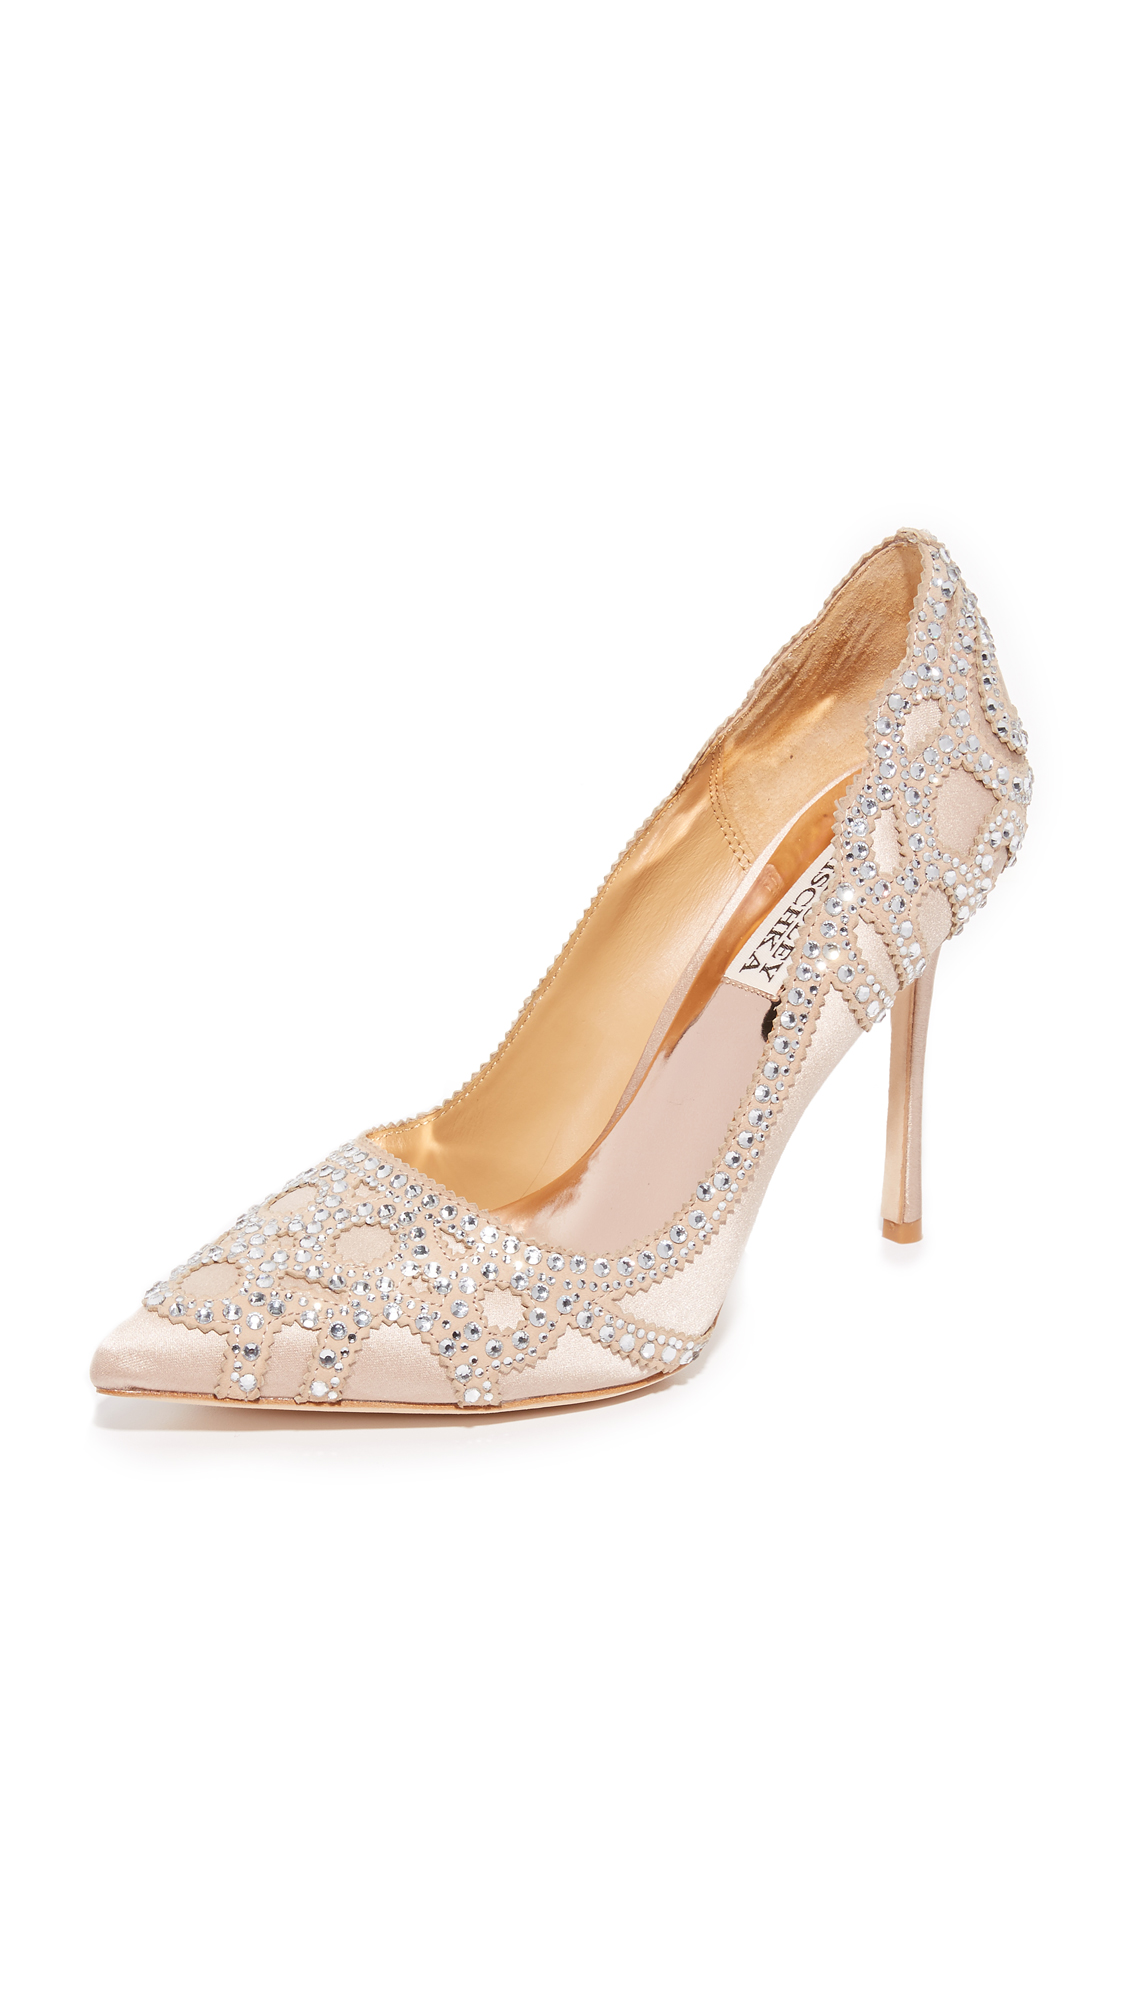 Badgley Mischka Rouge Pumps - Latte